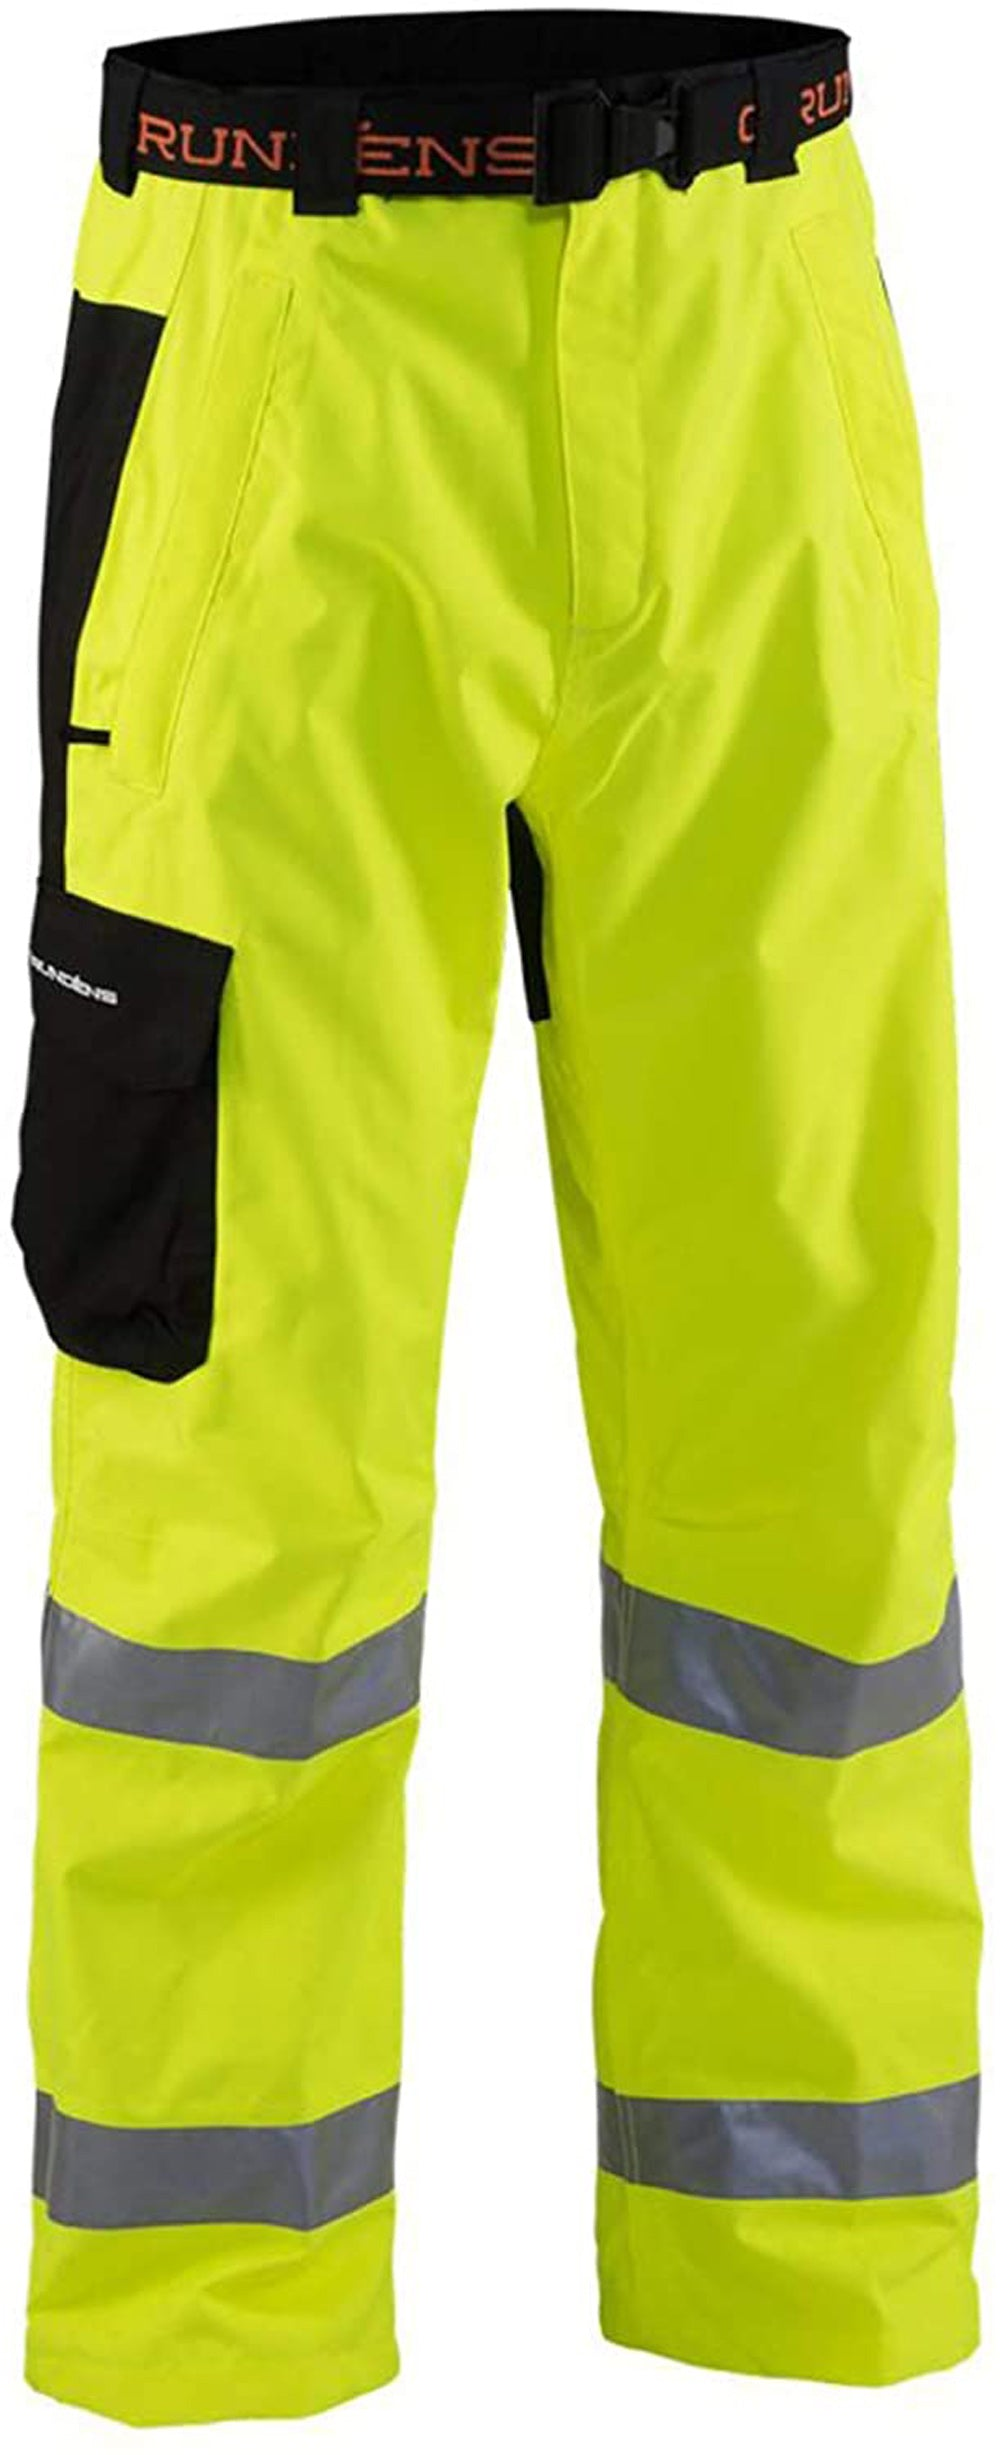 Weather Watch Pant in Reflective Yellow color from the front view